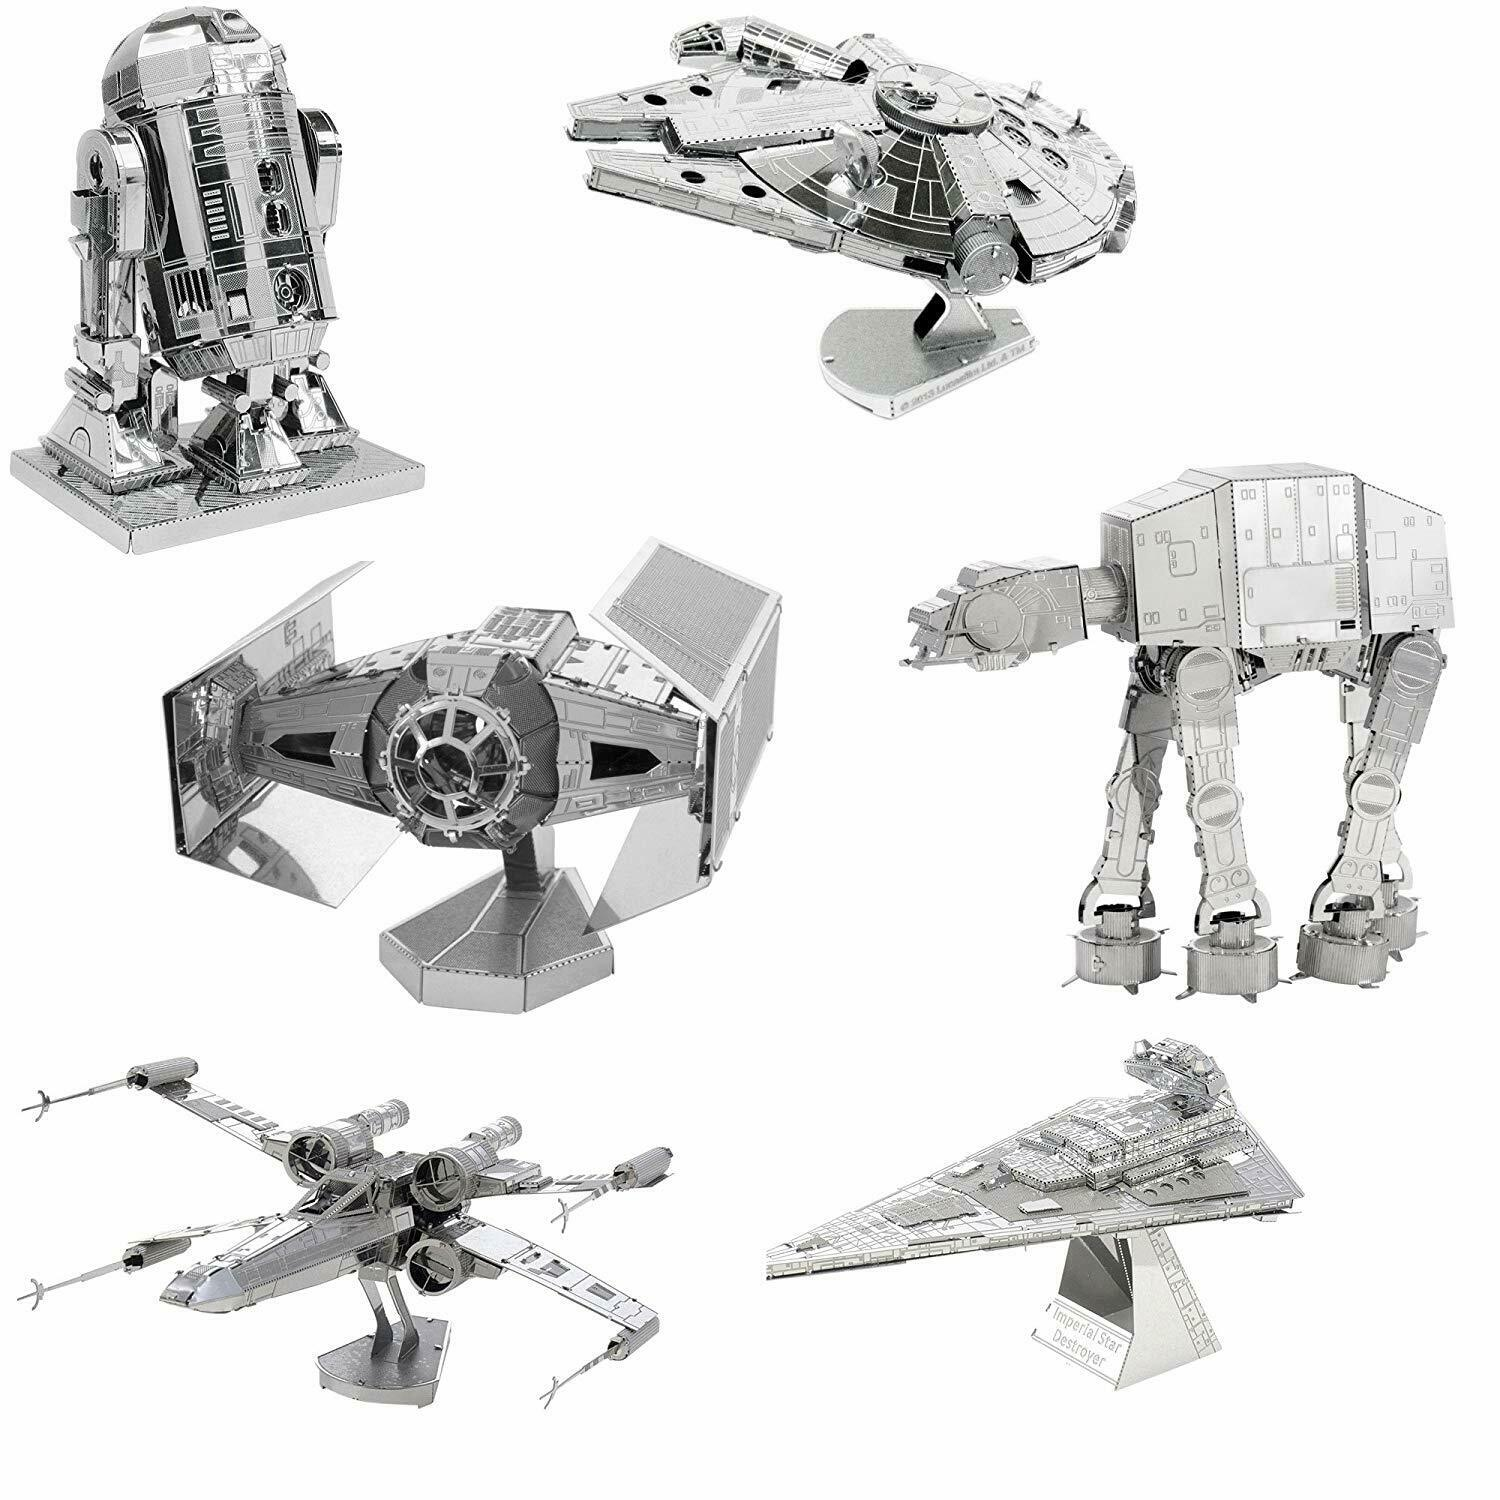 6 Metal Ekonsth stjärnornas krig modelllllerler Kit Destroyer Falcon R2D2 X -vinge AT -AT Tie Fighter